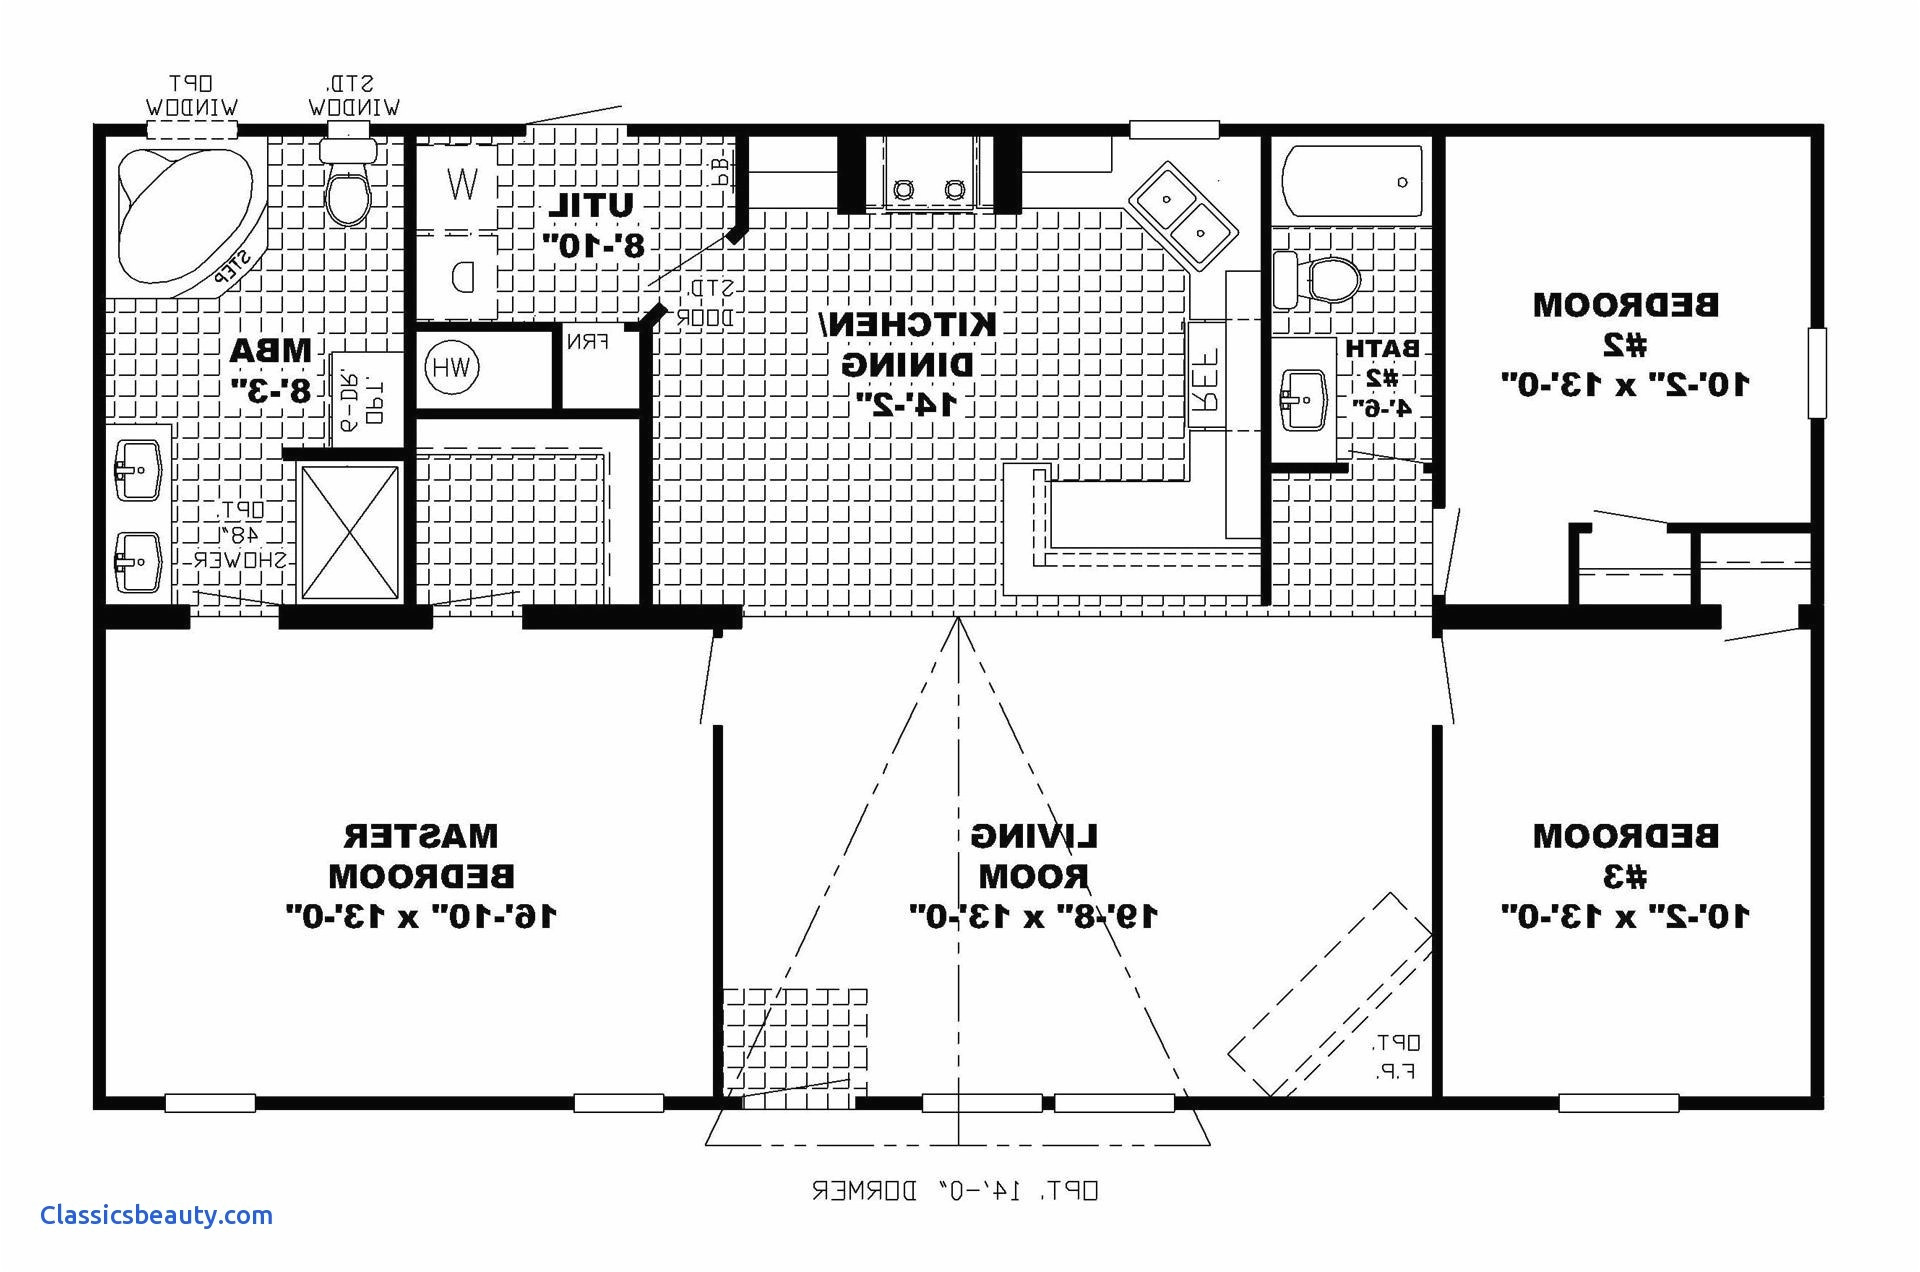 texas house plans super small home house plans best texas tiny homes plan 750 small